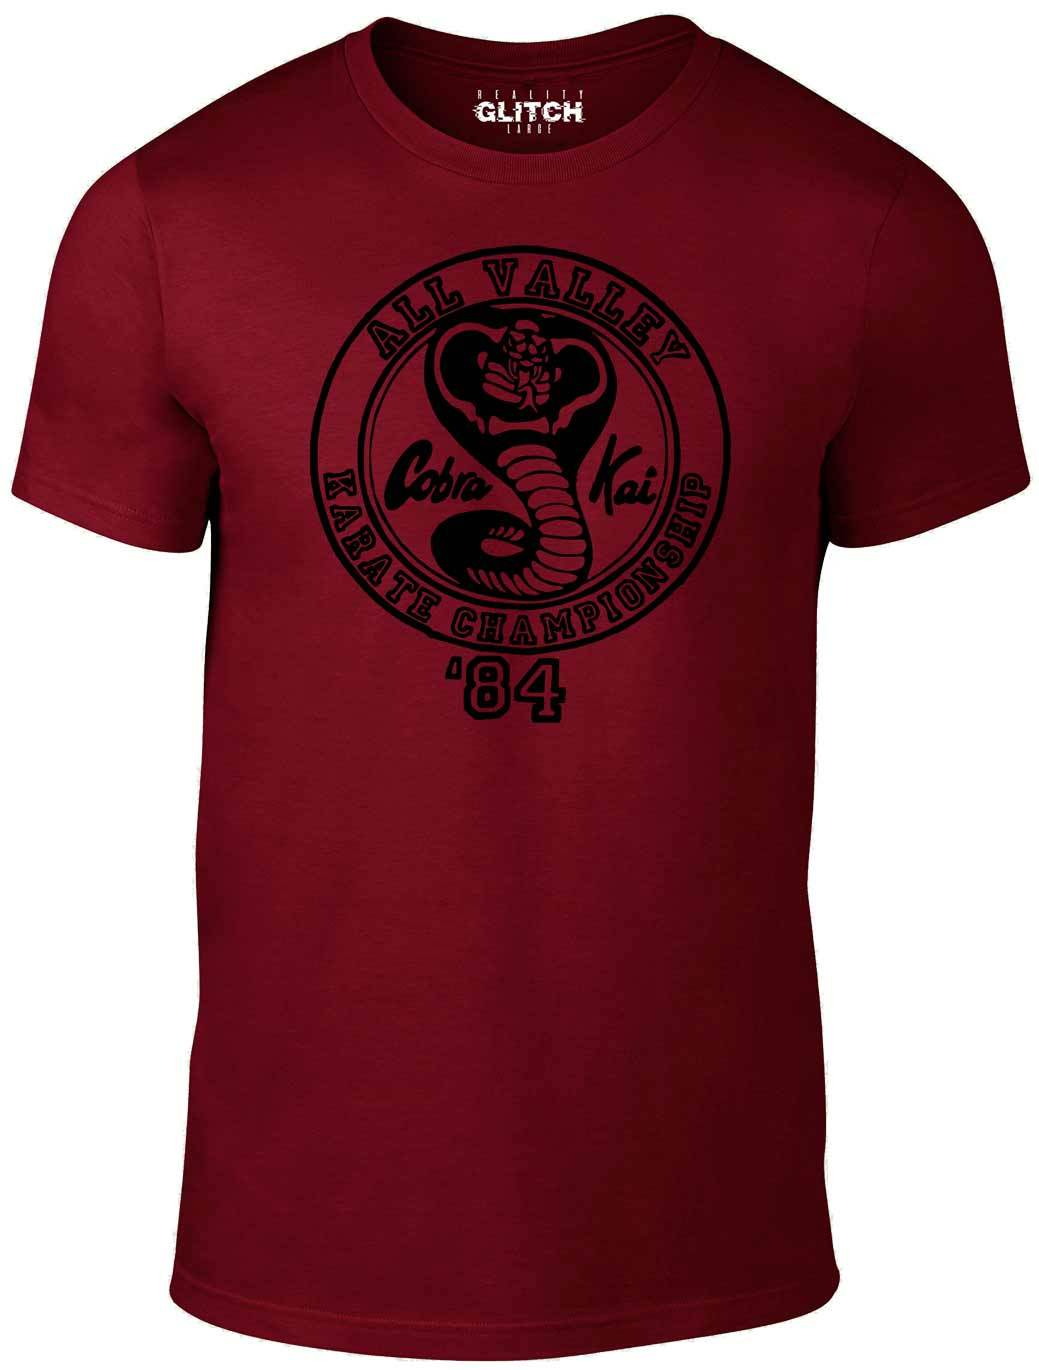 4b33b21e2 ... Men's Burgundy T-Shirt With a Cobra Kai logo from the Karate Kid  Printed Design ...